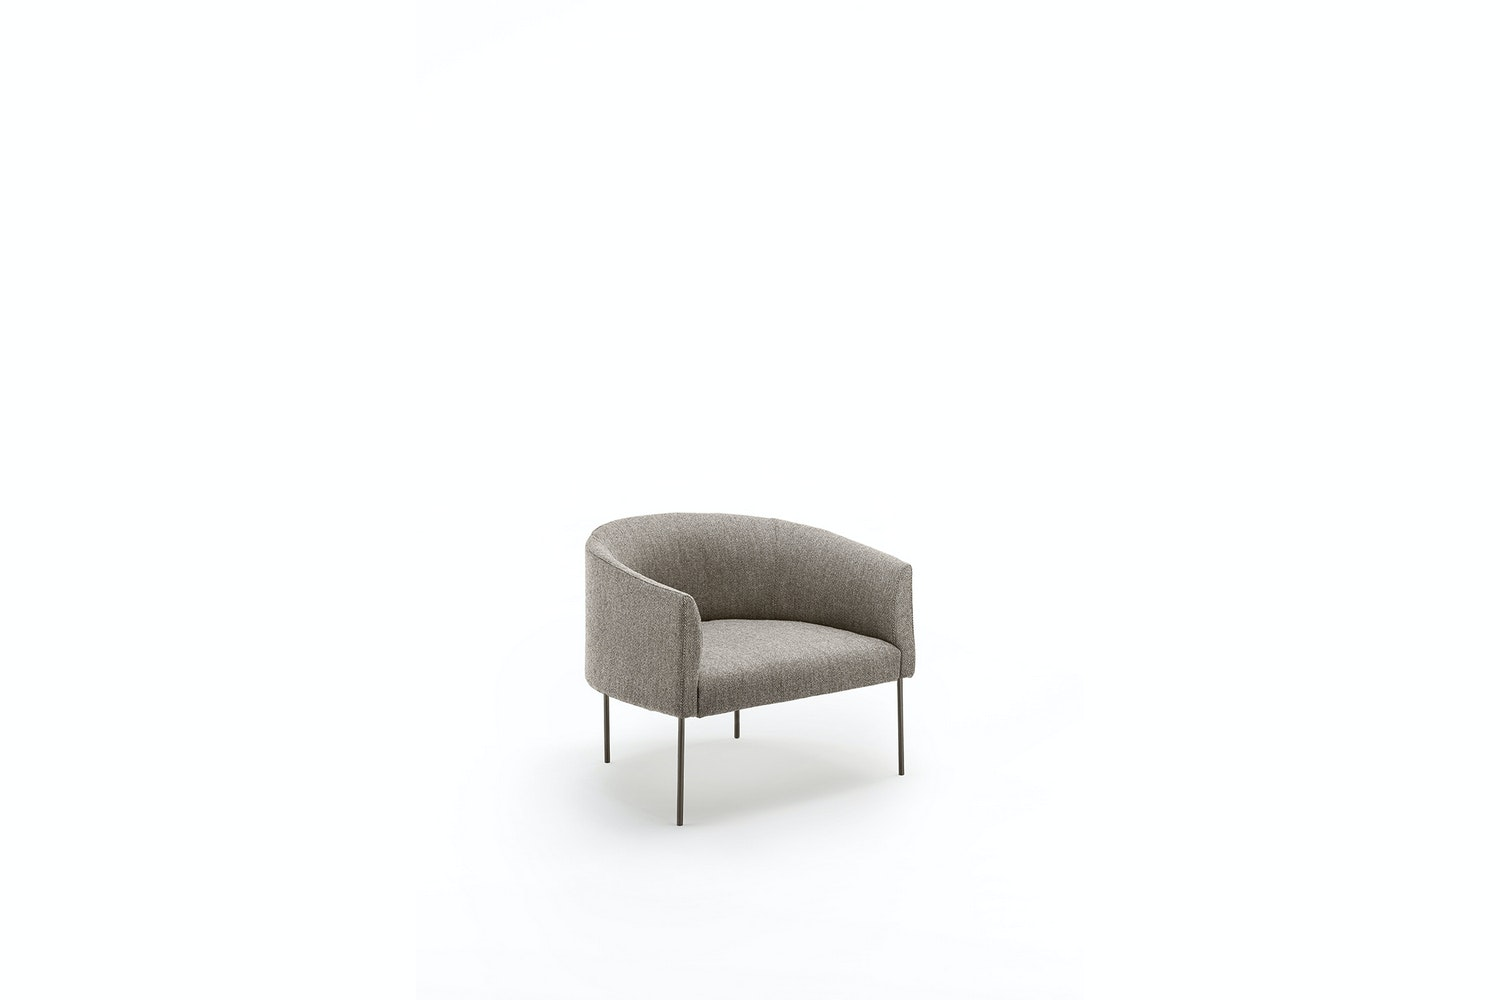 Era Armchair by David Lopez Quincoces for Living Divani